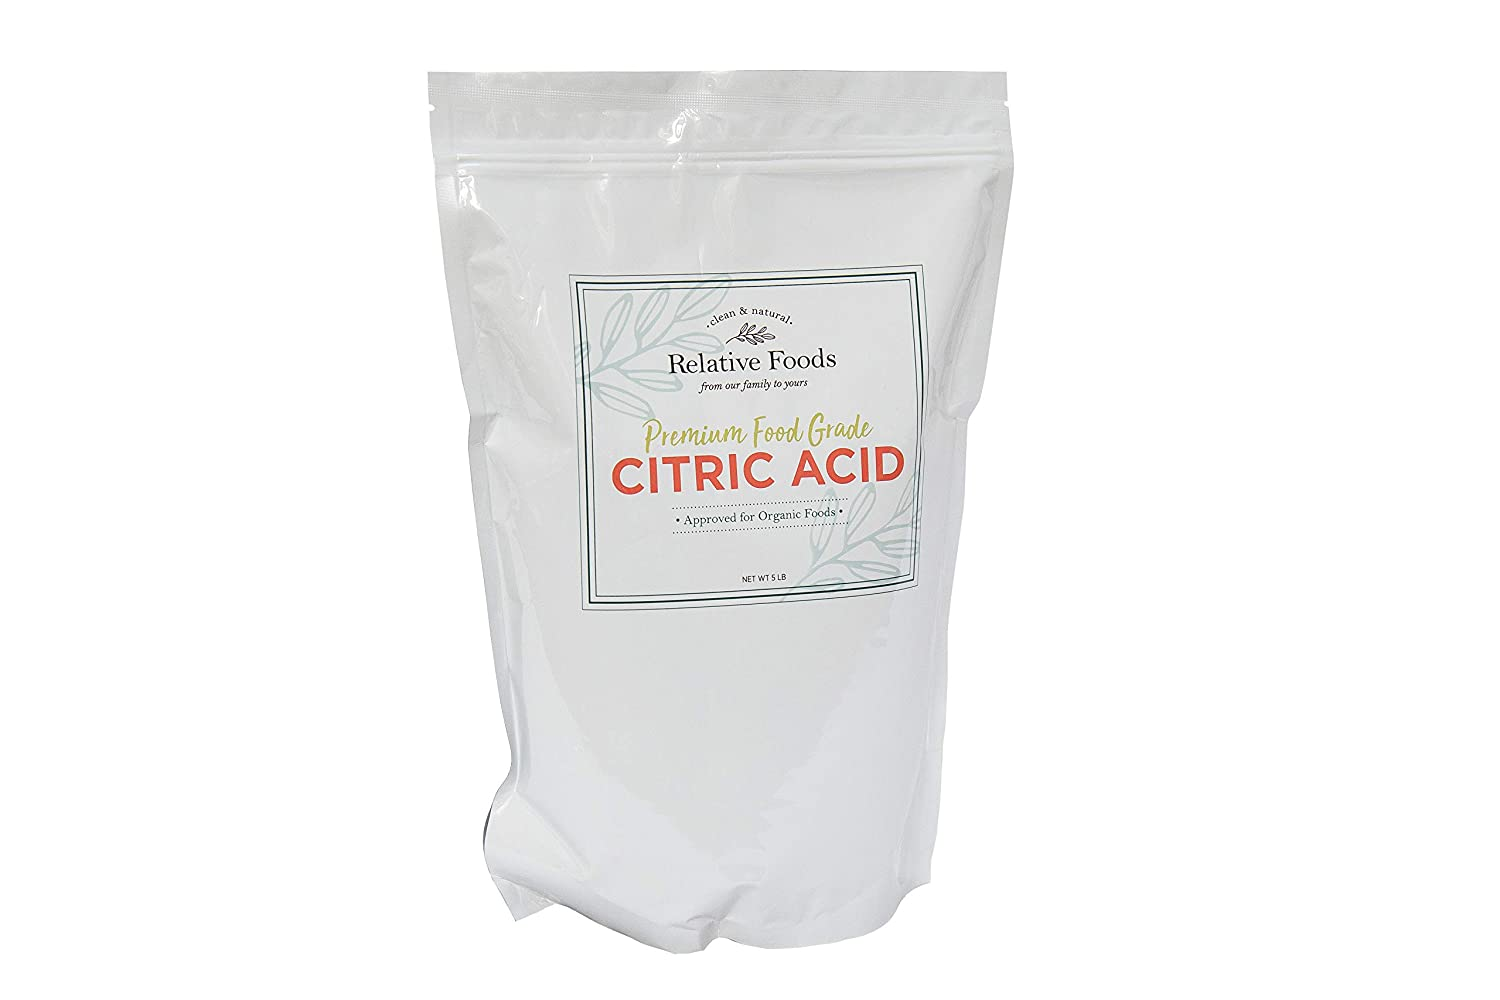 Relative Foods, food grade citric acid, 5 pounds packaged in our allergen free facility, heavy duty stand up pouch with resealable zipper.